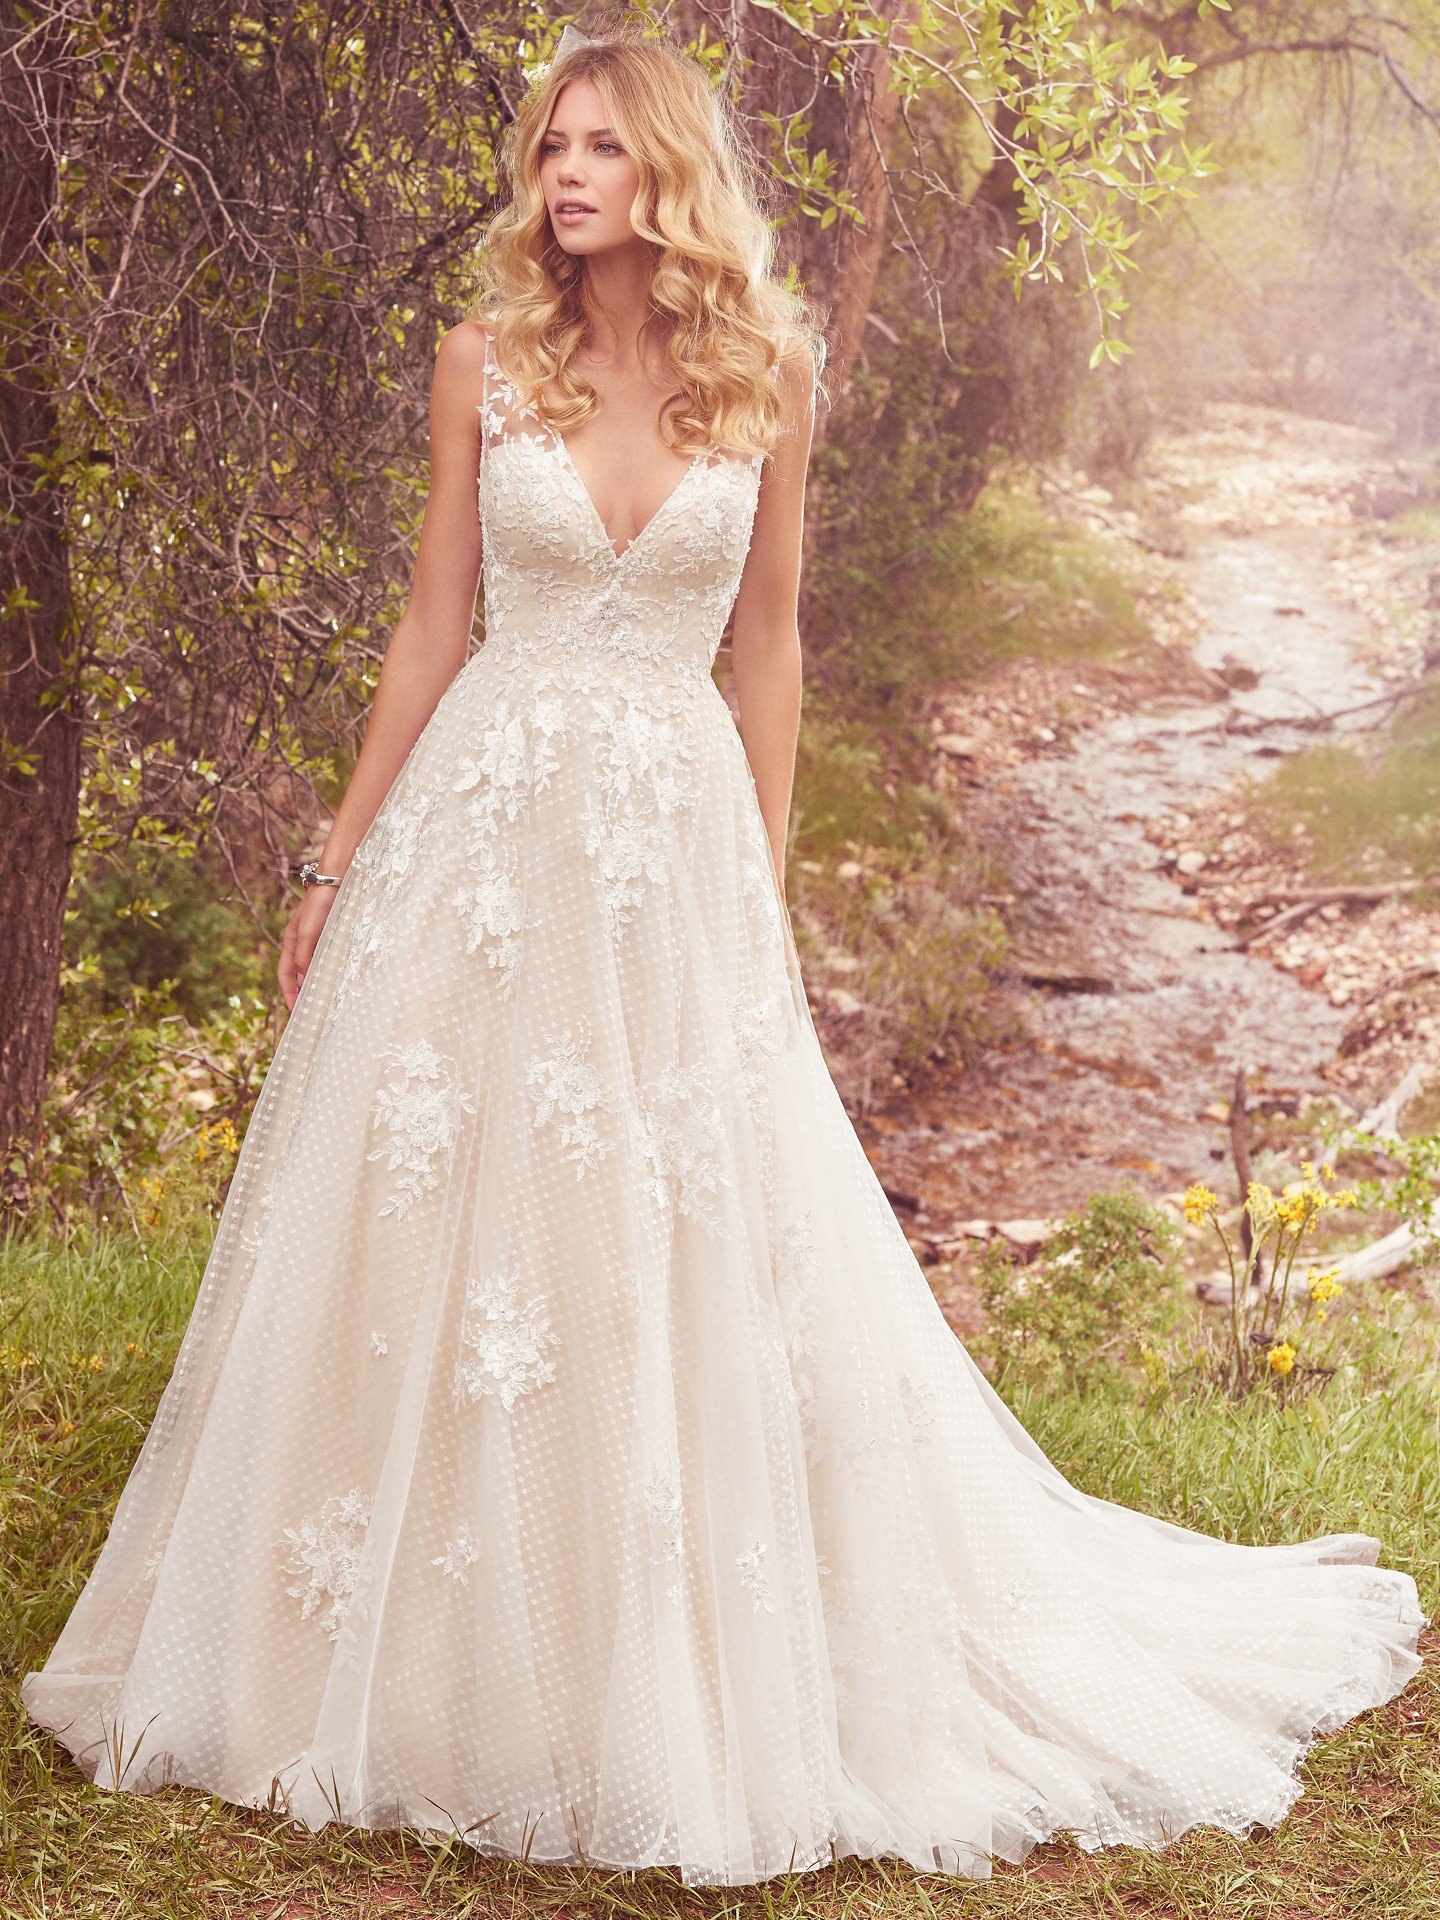 Sleeveless V-neck Lace Appliqued A-line Wedding Dress